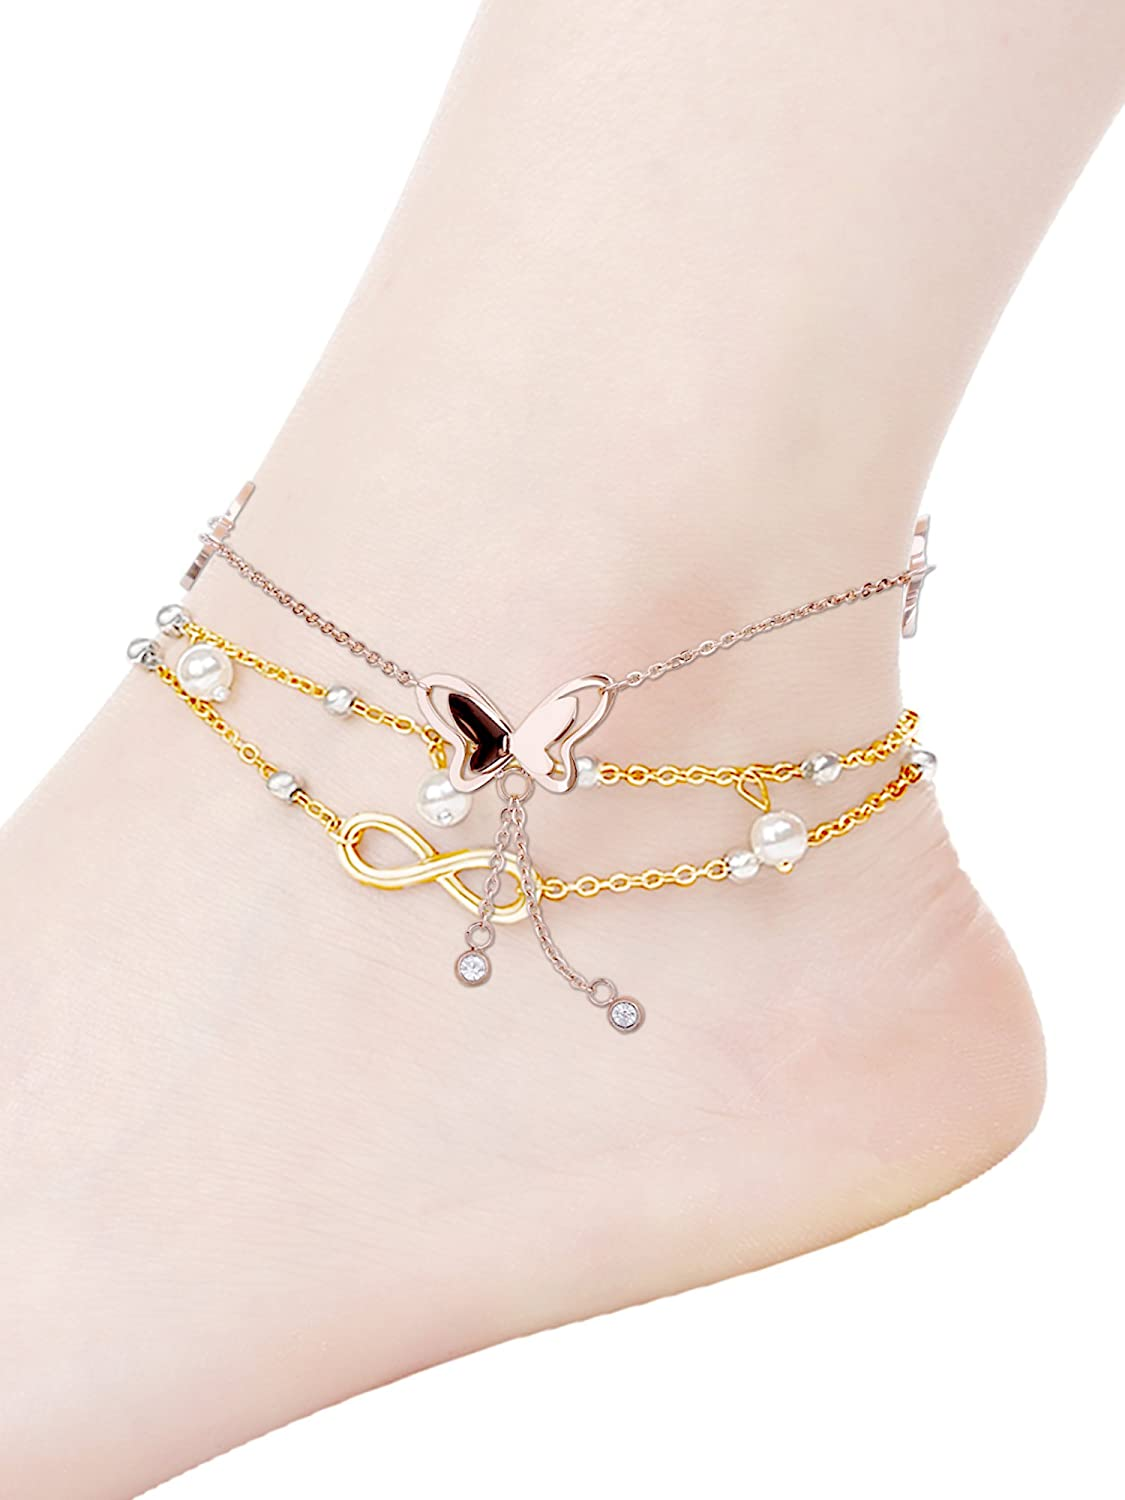 711ababdb 2 Styles Butterfly Ankle Anklet Alloy Anklet Chain Bead Ankle Bracelet with  Storage Bag for Women and Girls (Gold